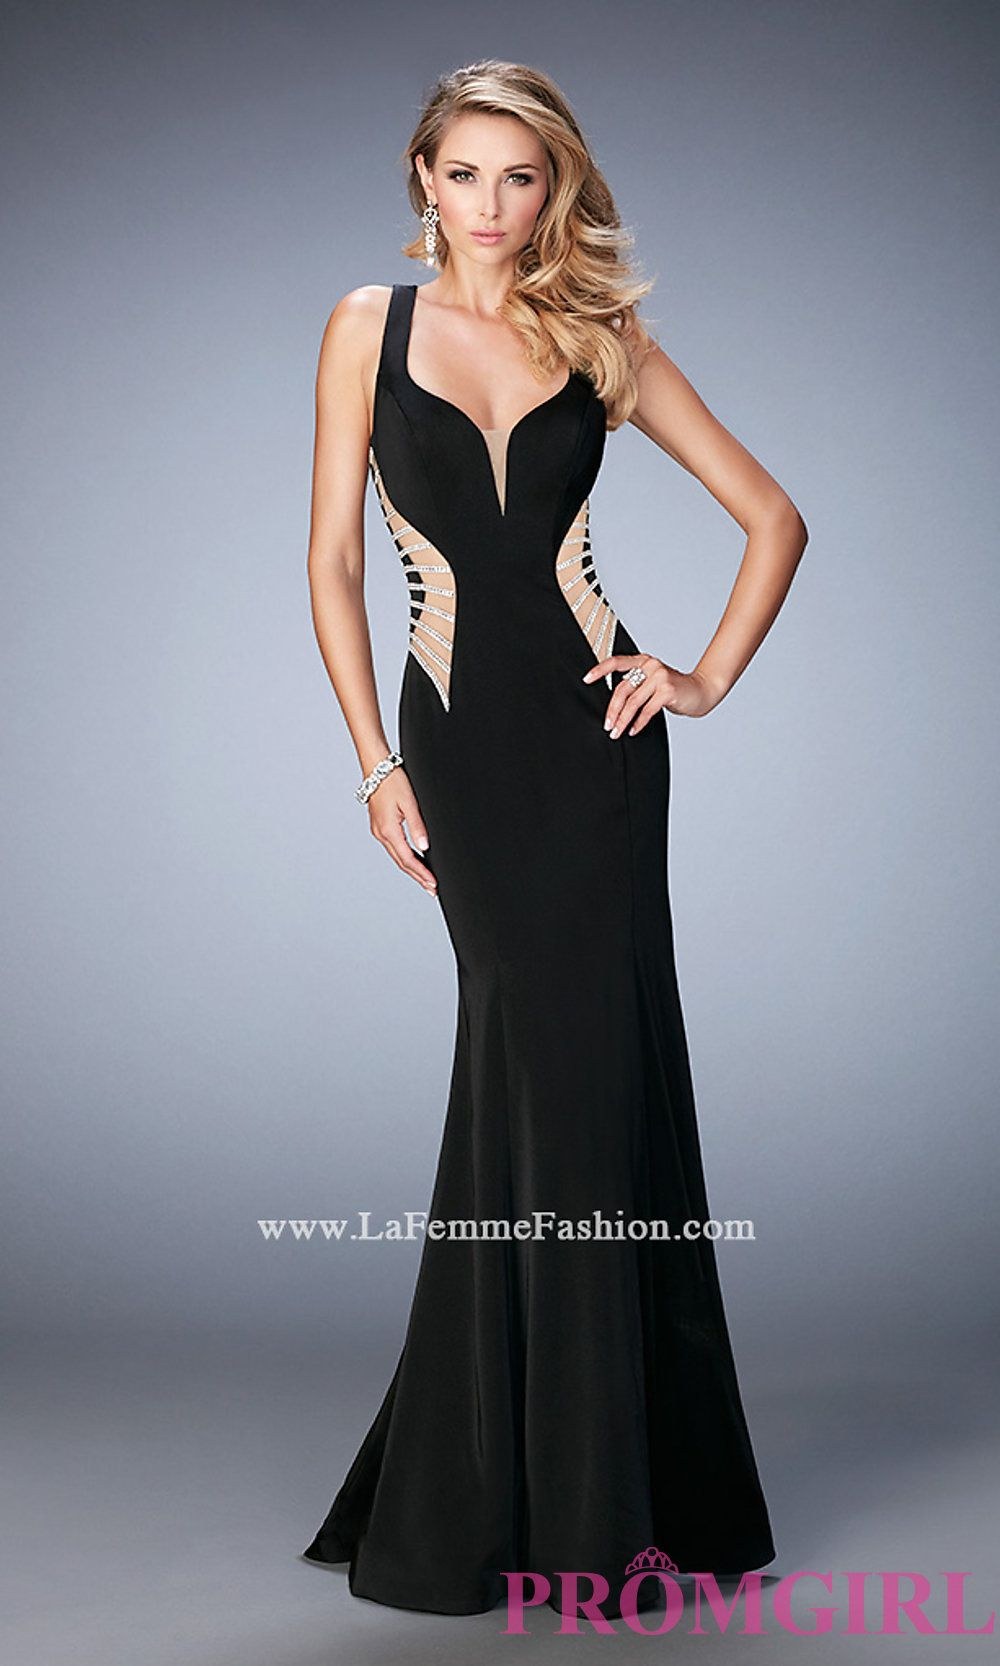 Long Sweetheart Prom Dress with Sheer Sides by La Femme LF-22742 ...